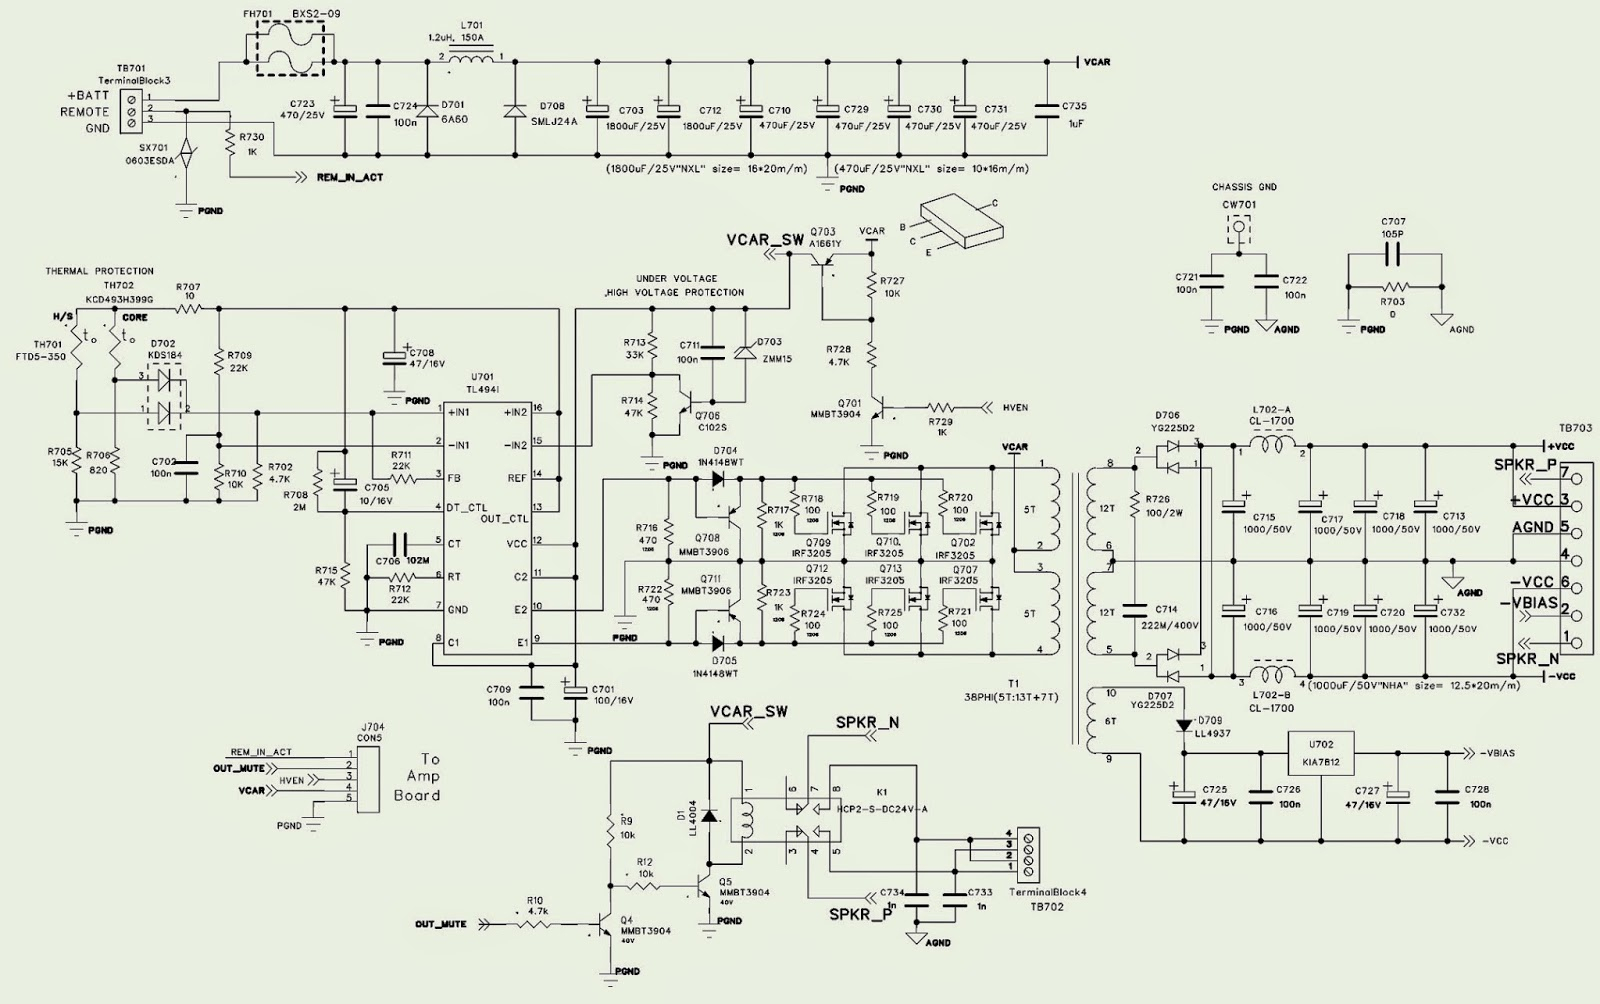 Various Diagram: Jbl Ms A5001 Schematic Power Amplifier And Smps - Jbl Usb Wiring Diagram